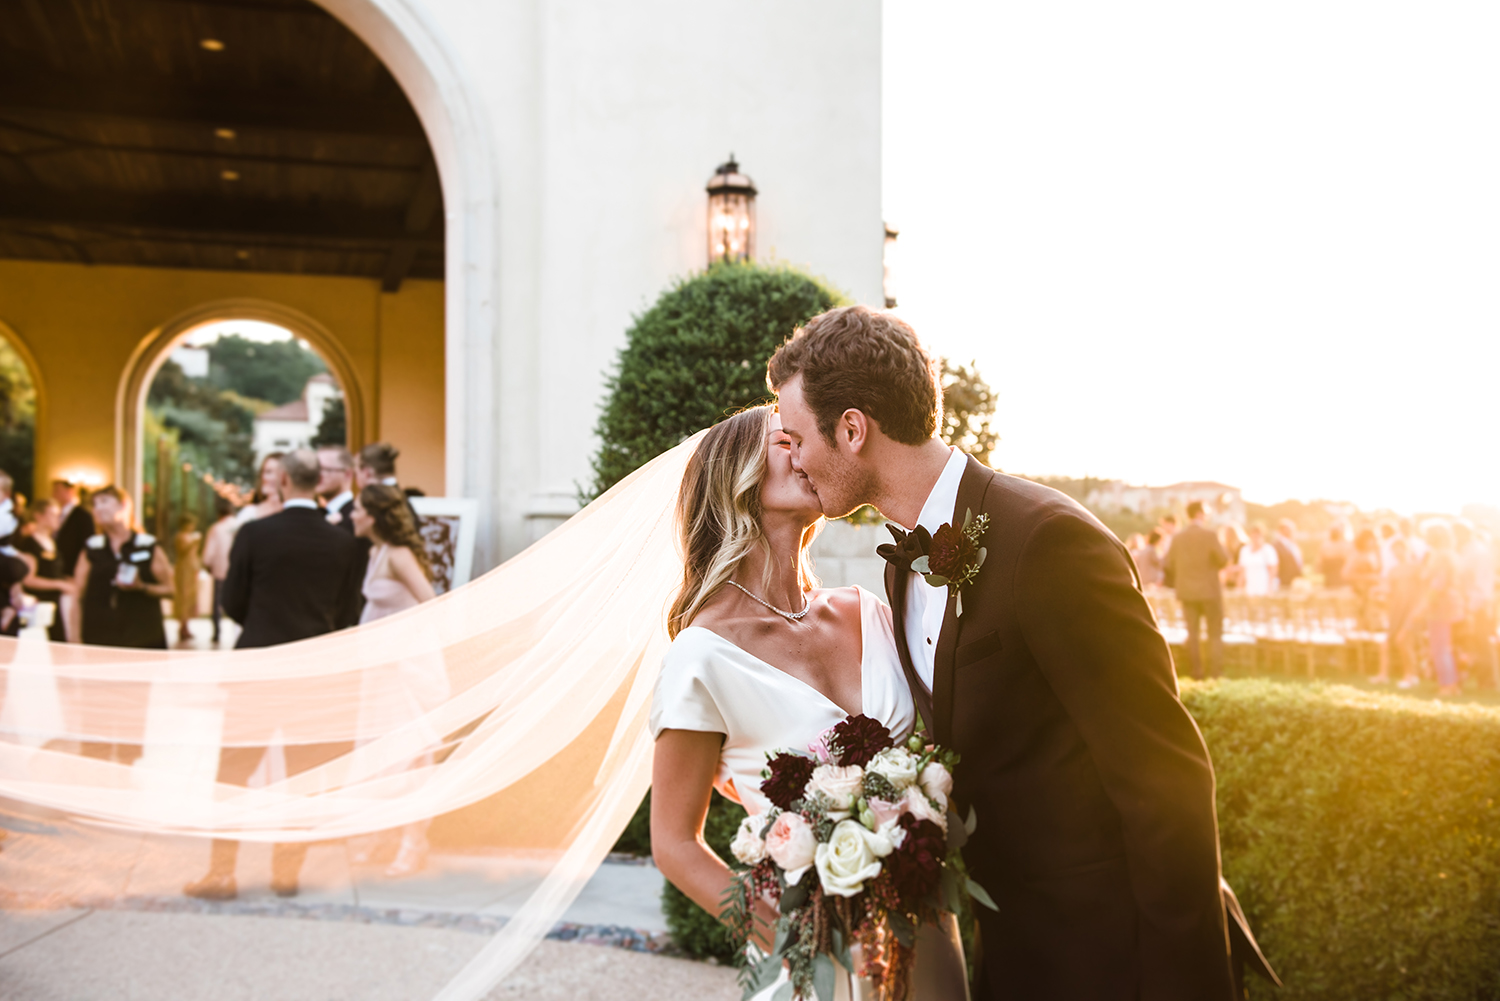 livvyland-blog-olivia-watson-wedding-villa-del-lago-austin-texas-fall-blush-burgundy-classic-romantic-bride-groom-first-kiss-1